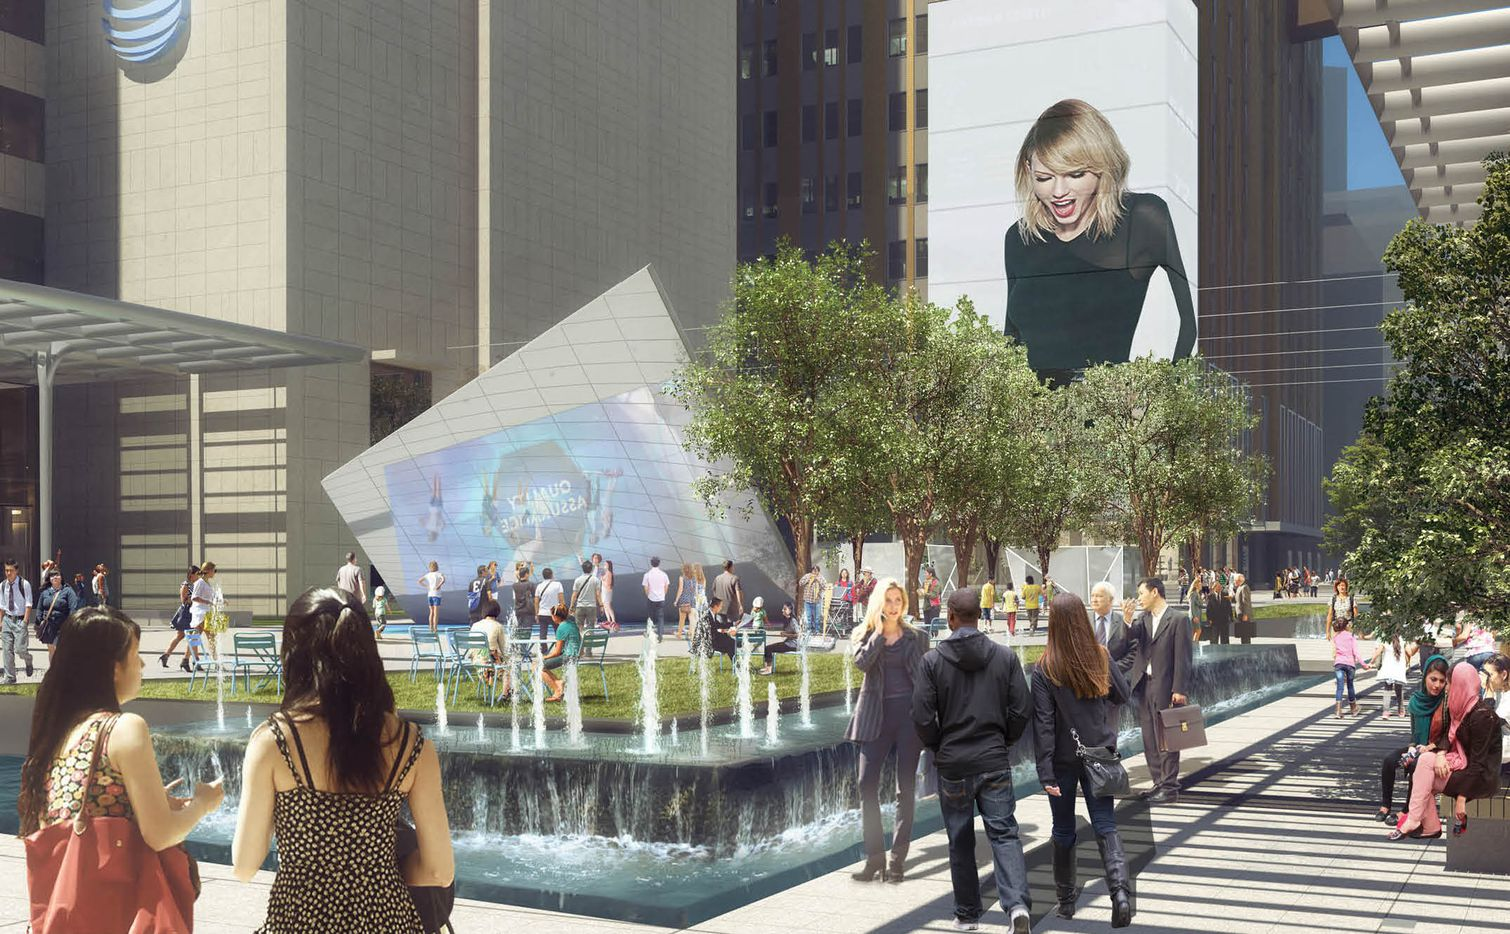 A 6-story tall video wall, water features and art are included in the revamped plaza area.